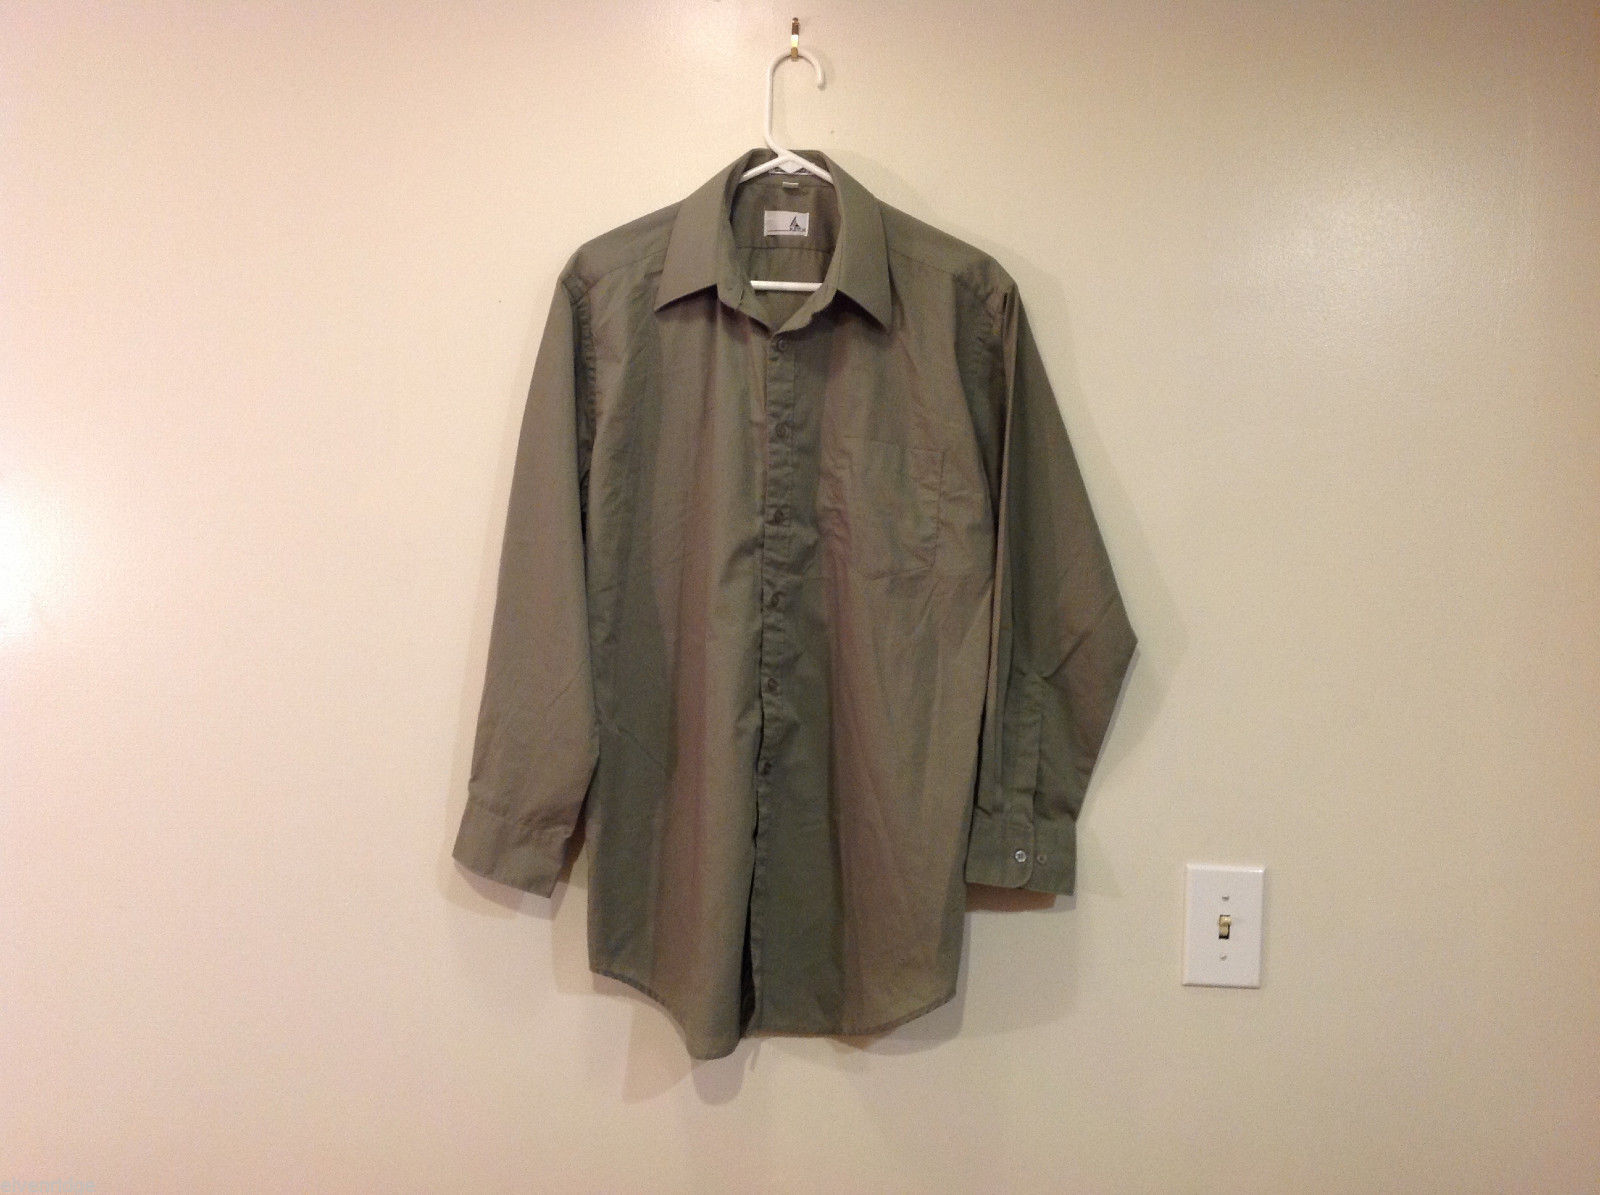 Ketch Khaki Long Sleeve Classic Shirt, Size 16 (32/33)